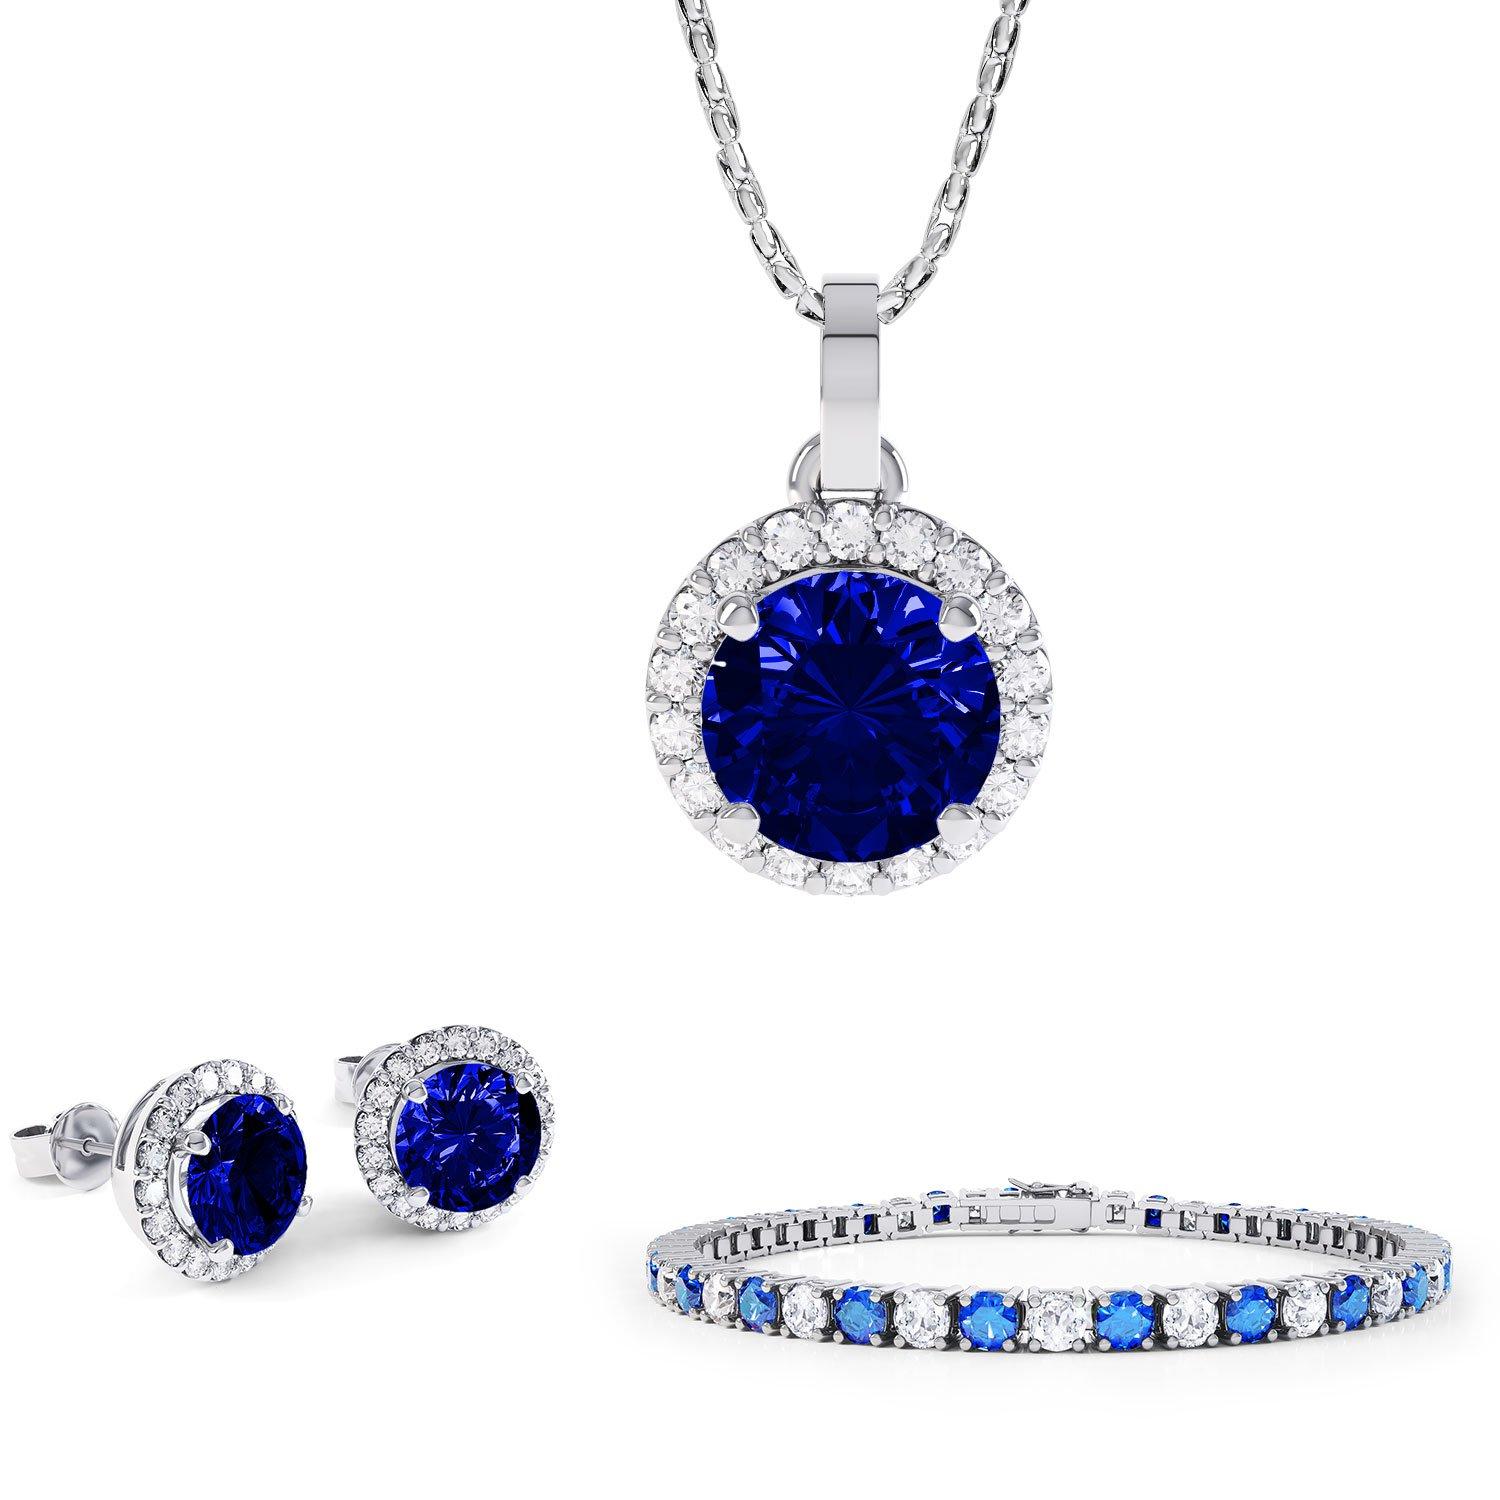 Eternity Blue and White Sapphire Platinum plated Silver Jewellery Set with Pendant